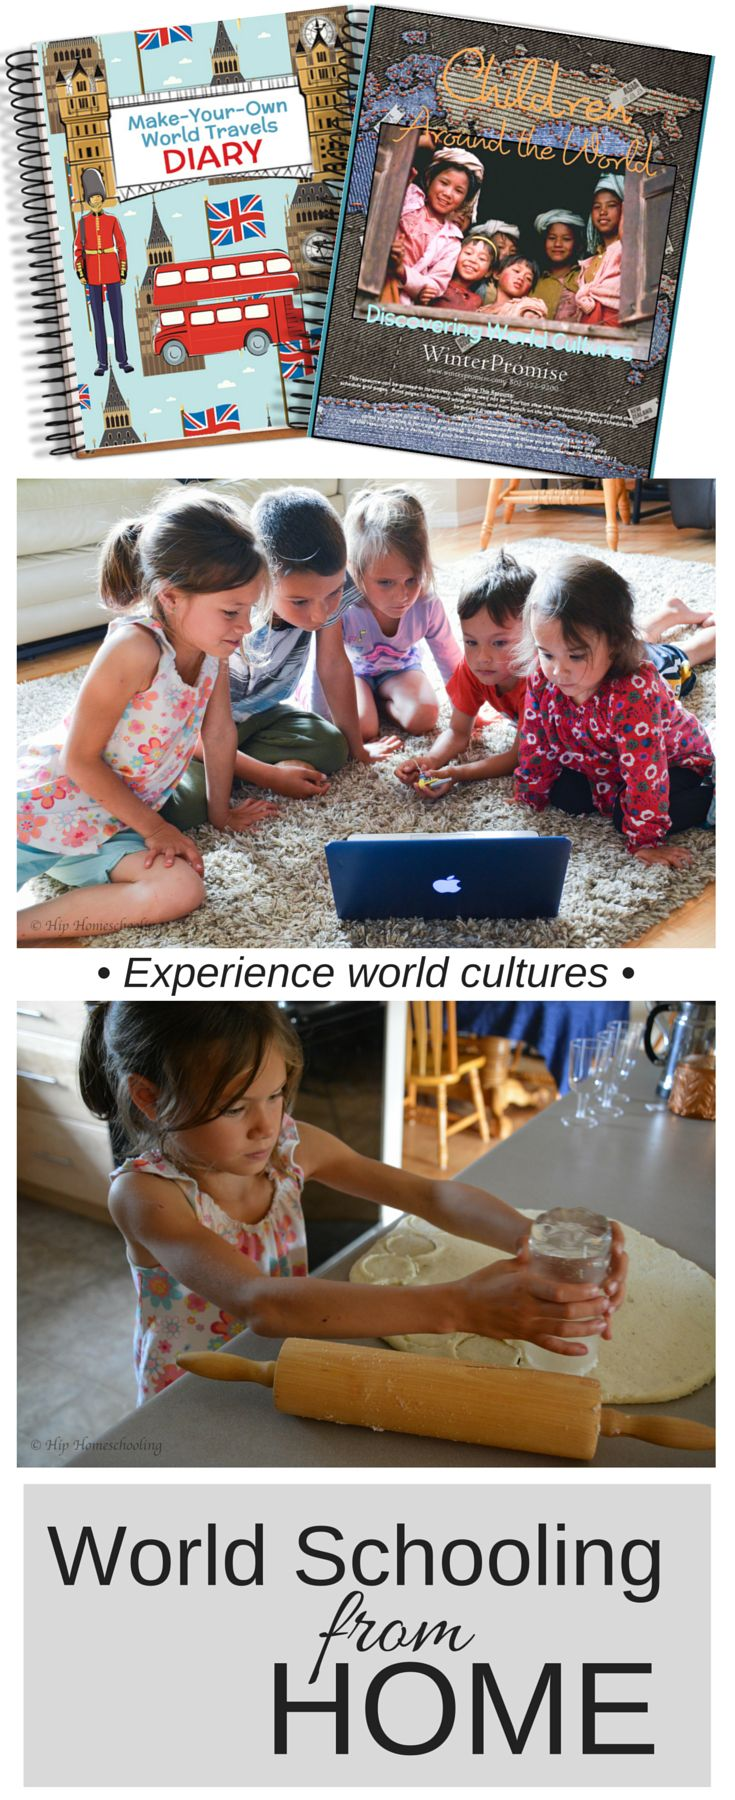 World Schooling from Home: worldschooling | homeschooling | homeschool | unschooling | charlotte mason homeschooling | charlotte…